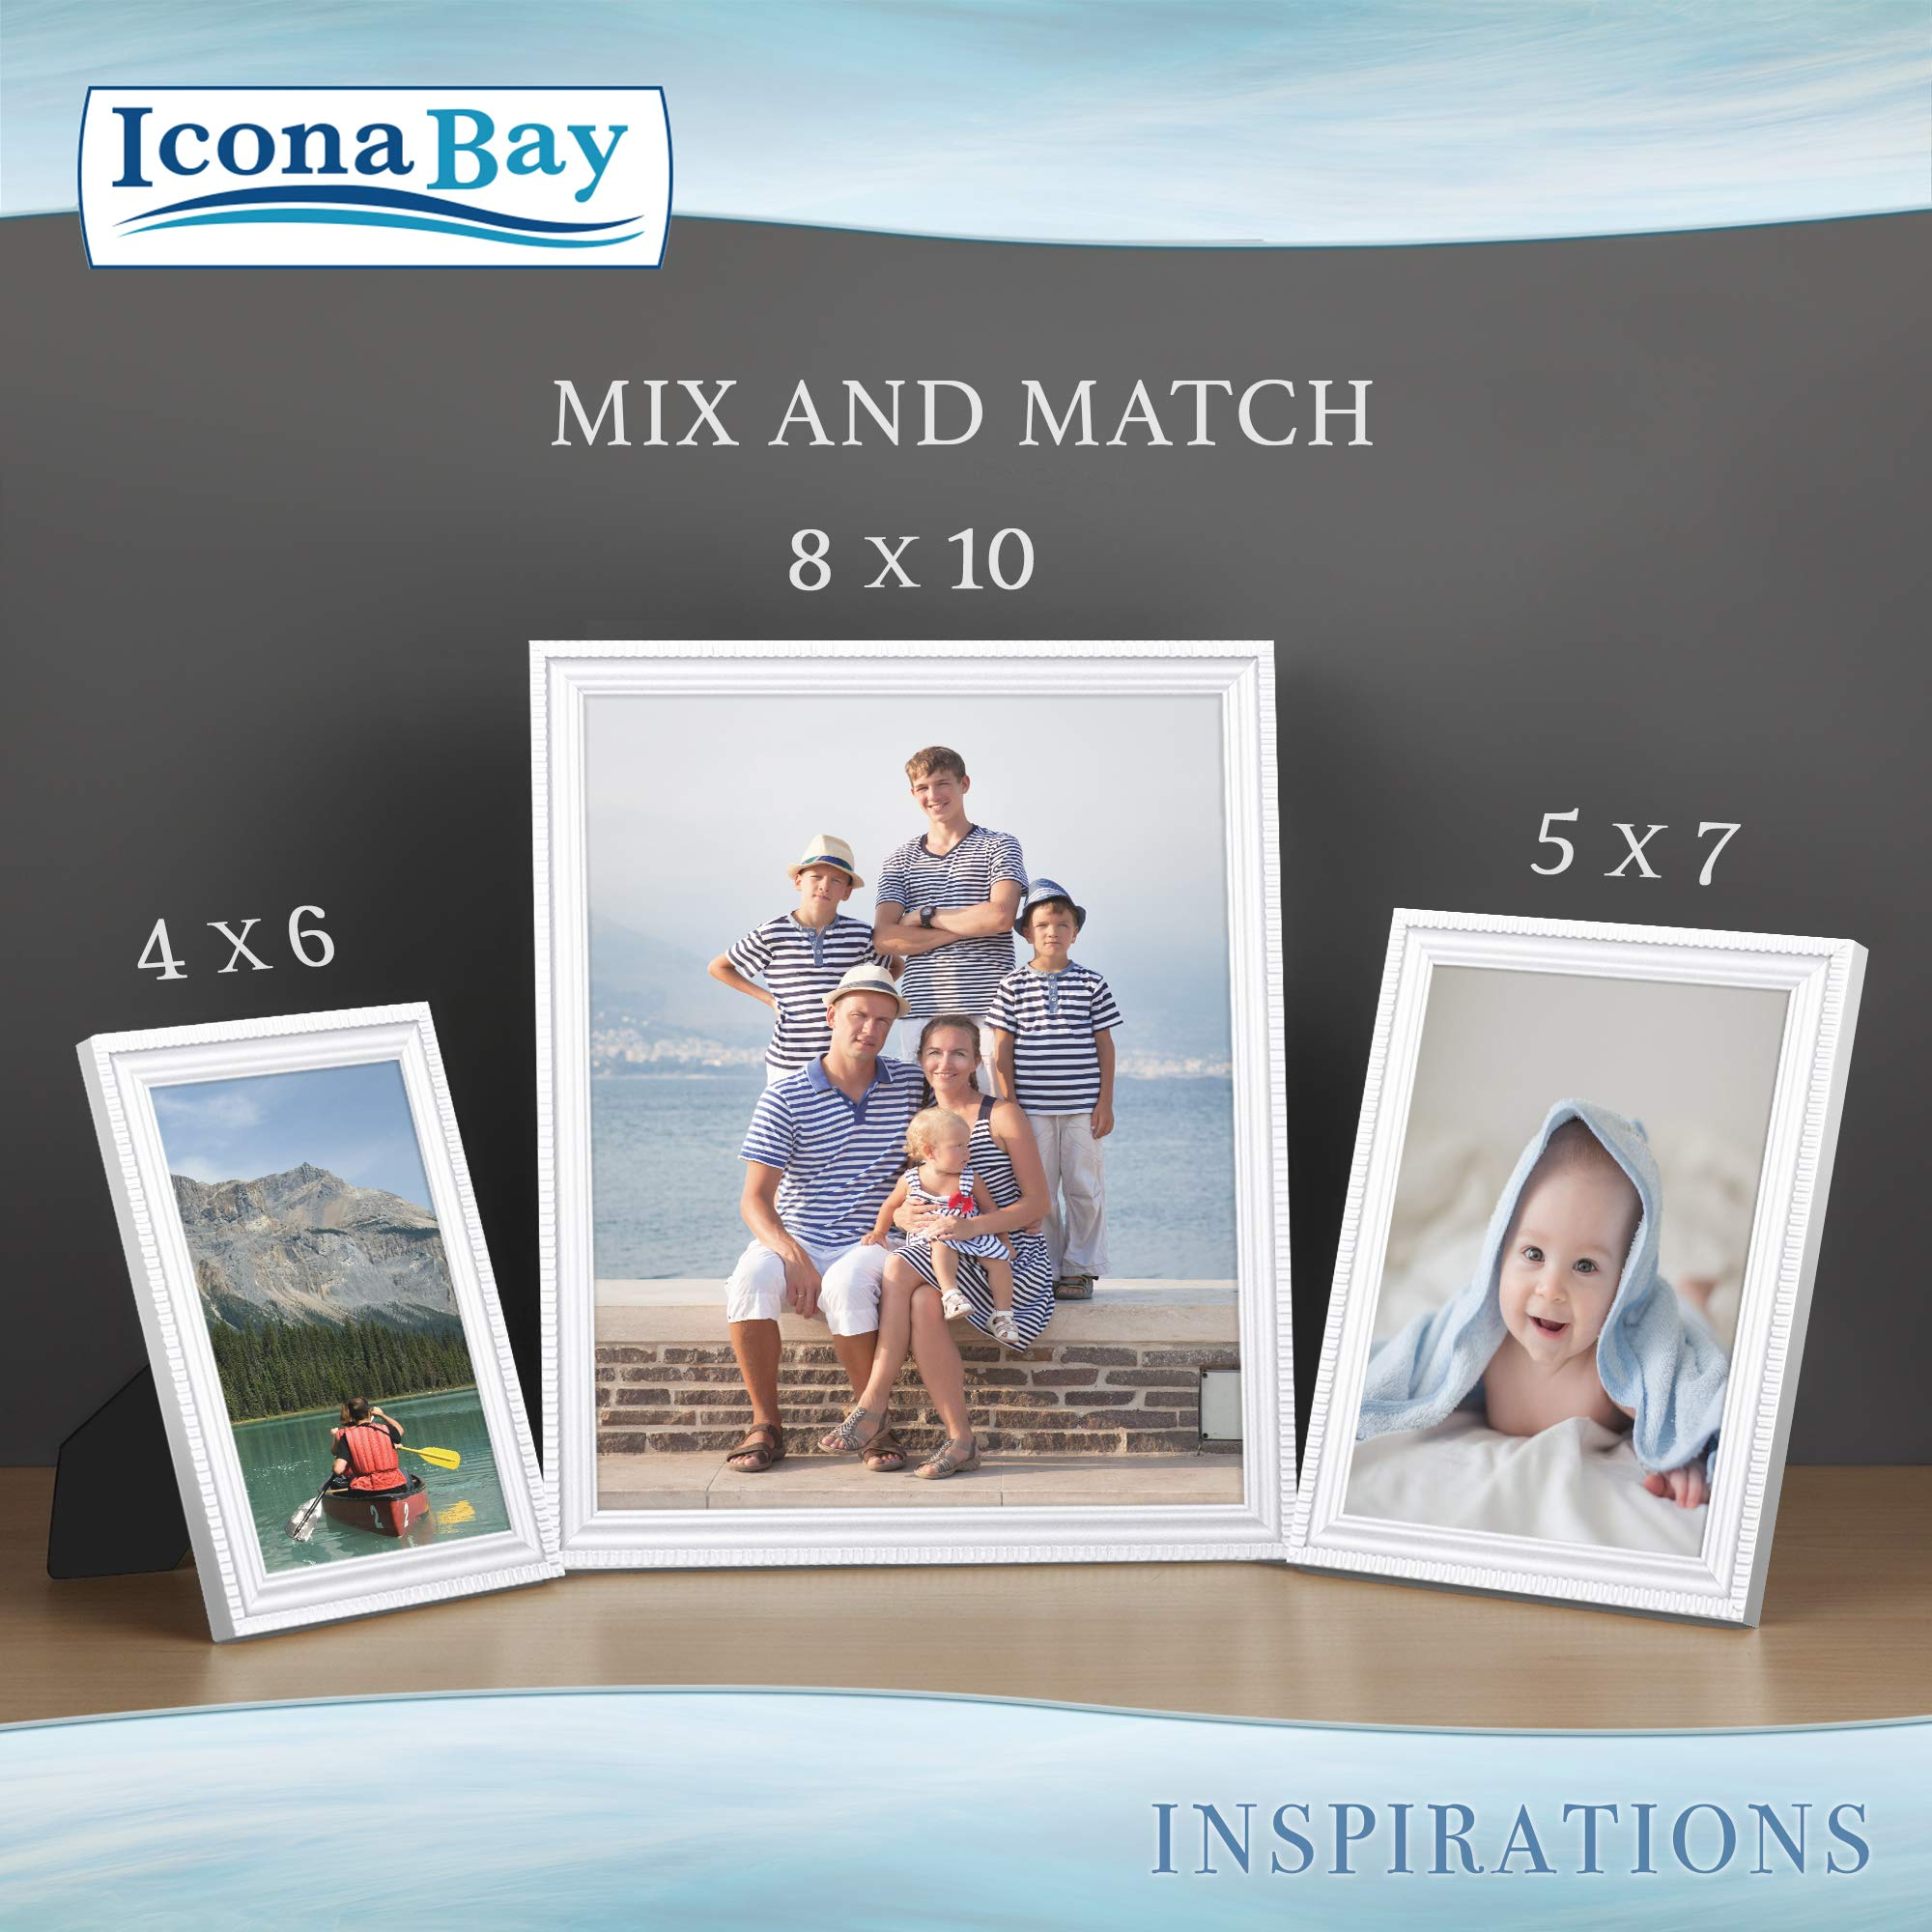 Icona Bay 8x10 Picture Frames (6 Pack, White) Picture Frame Set, Wall Mount or Table Top, Set of 6 Inspirations Collection by Icona Bay (Image #7)